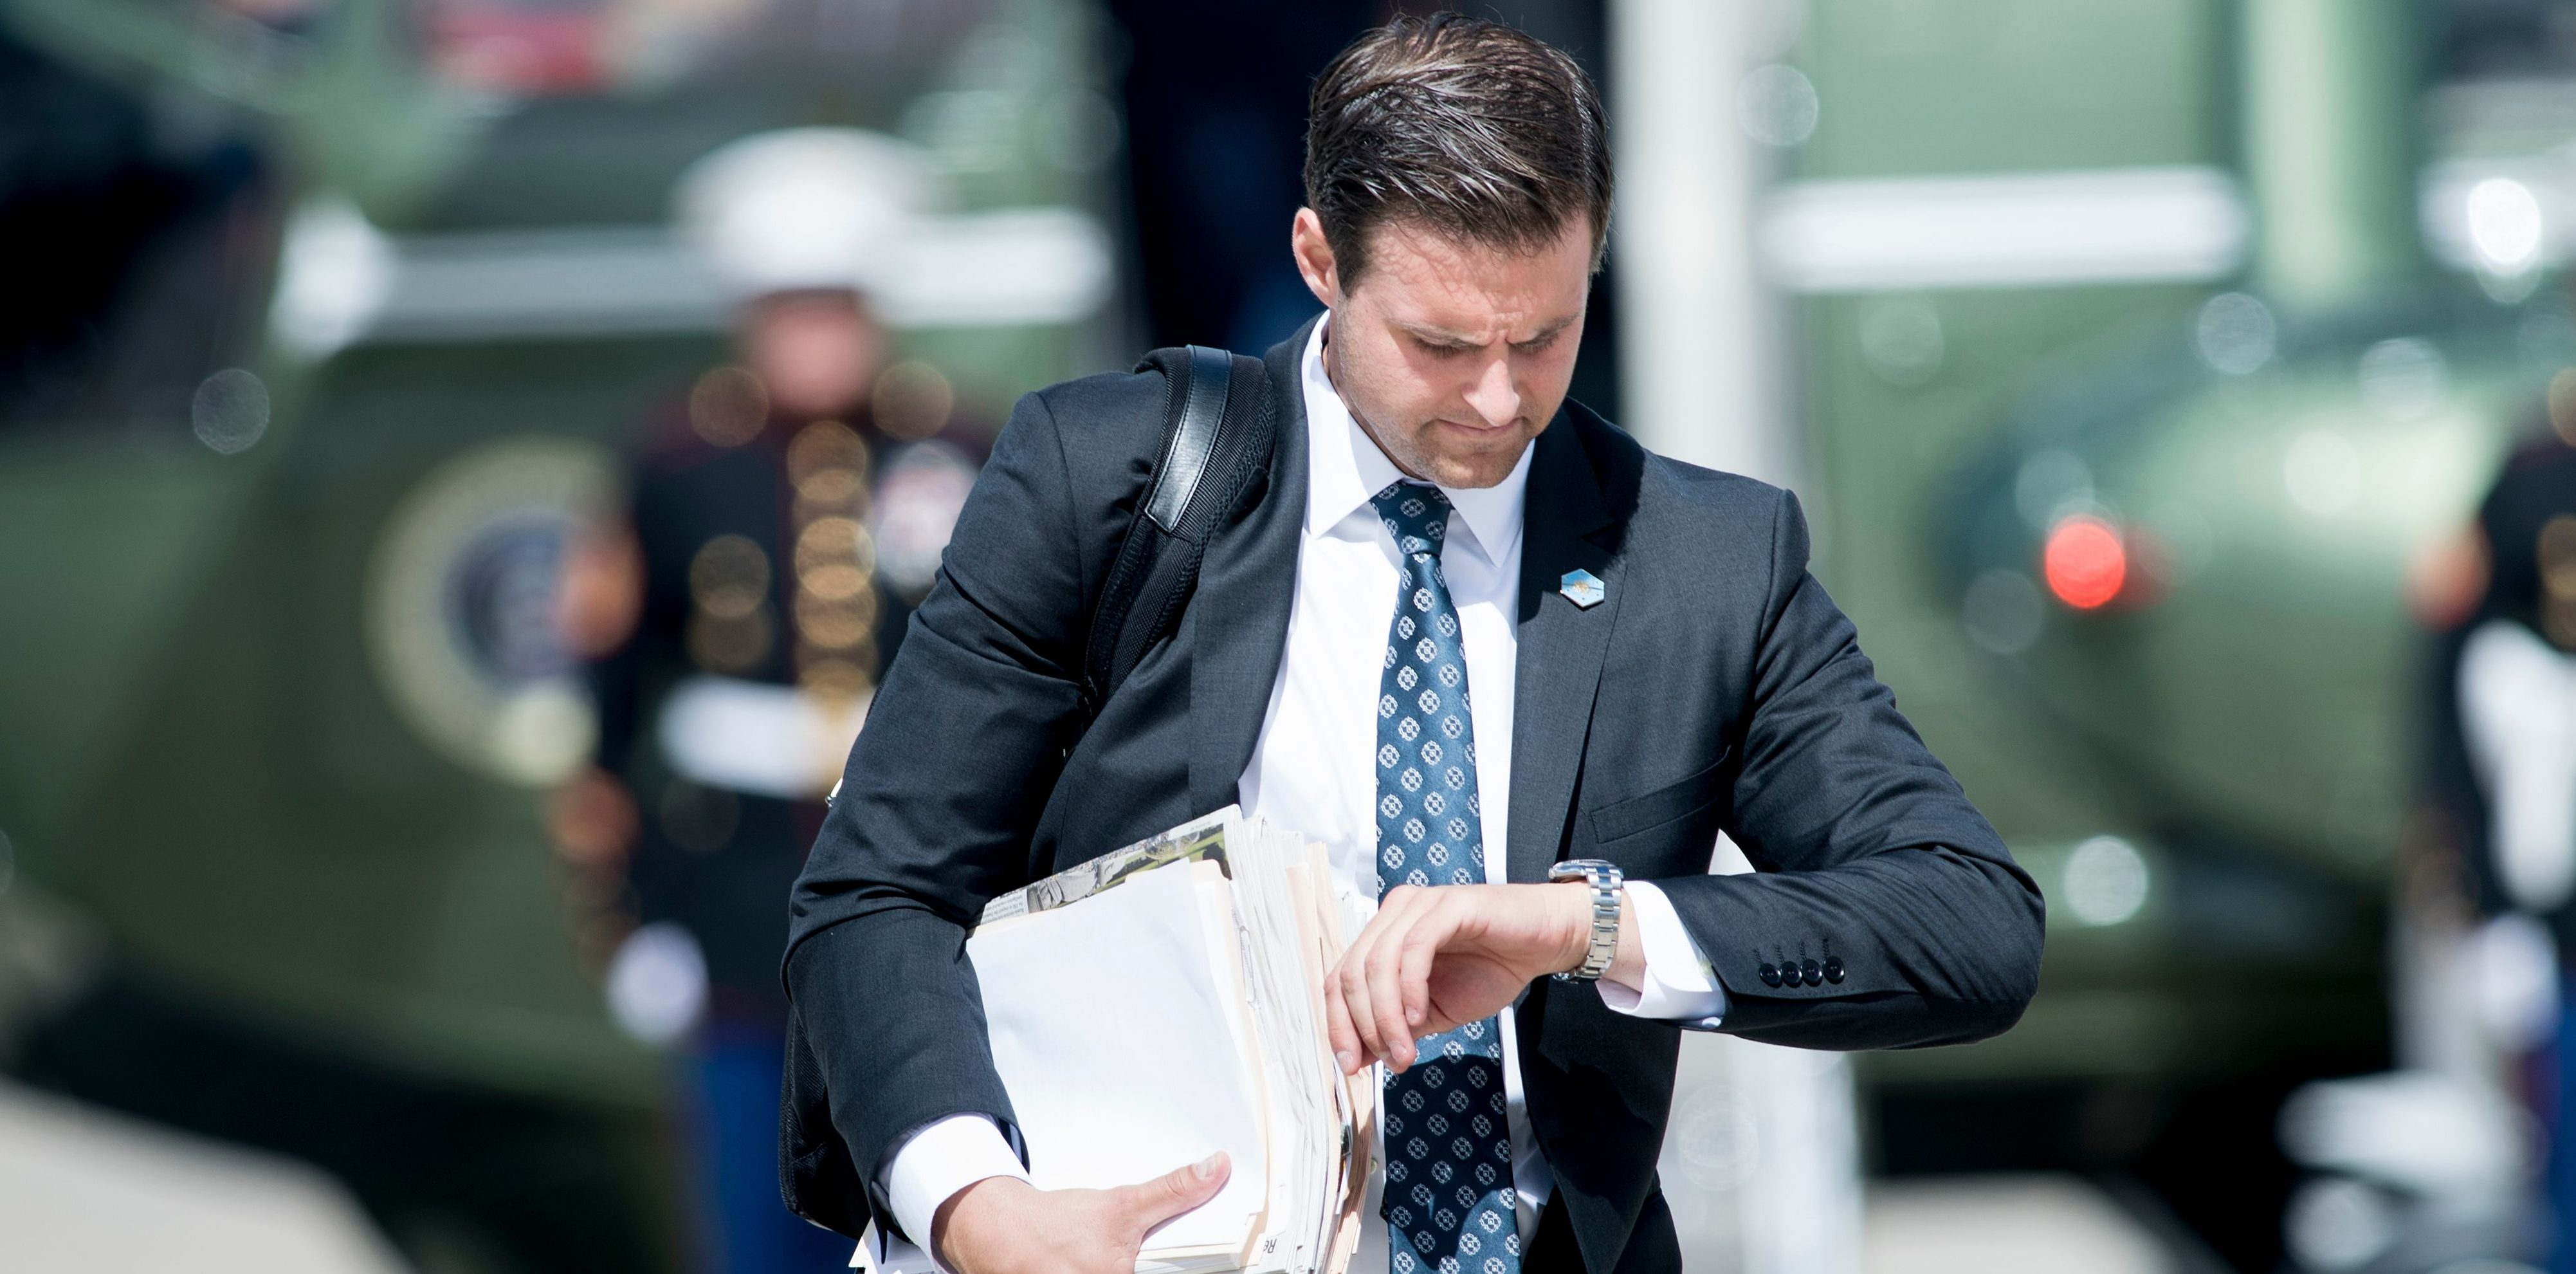 John McEntee, special assistant and personal aide follows US President Donald Trump to Air Force One at Andrews Air Force Base September 27, 2017 in Maryland. / AFP PHOTO / Brendan Smialowski (Photo credit should read BRENDAN SMIALOWSKI/AFP/Getty Images)